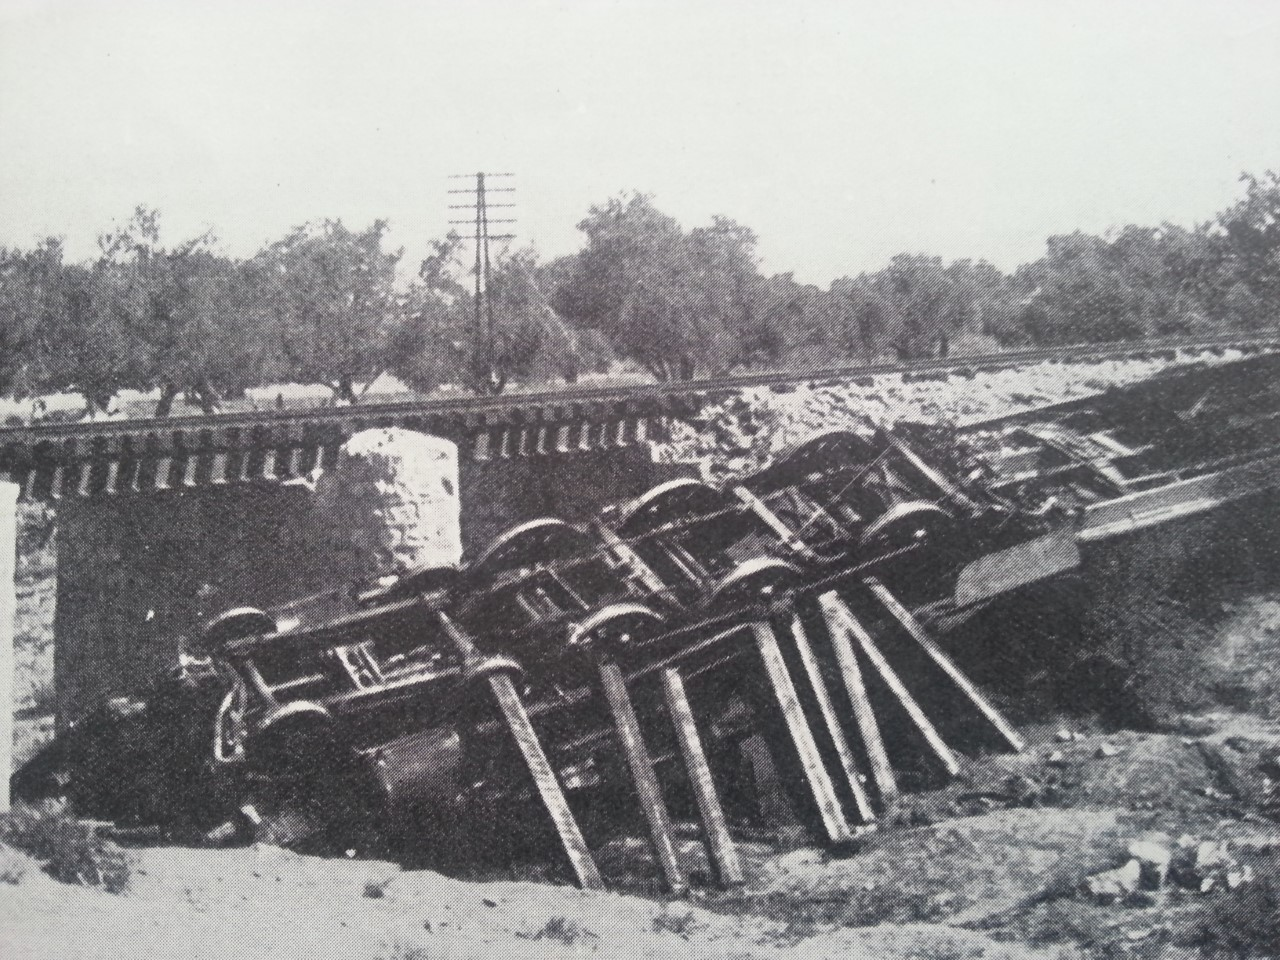 train wrecked in Palestine